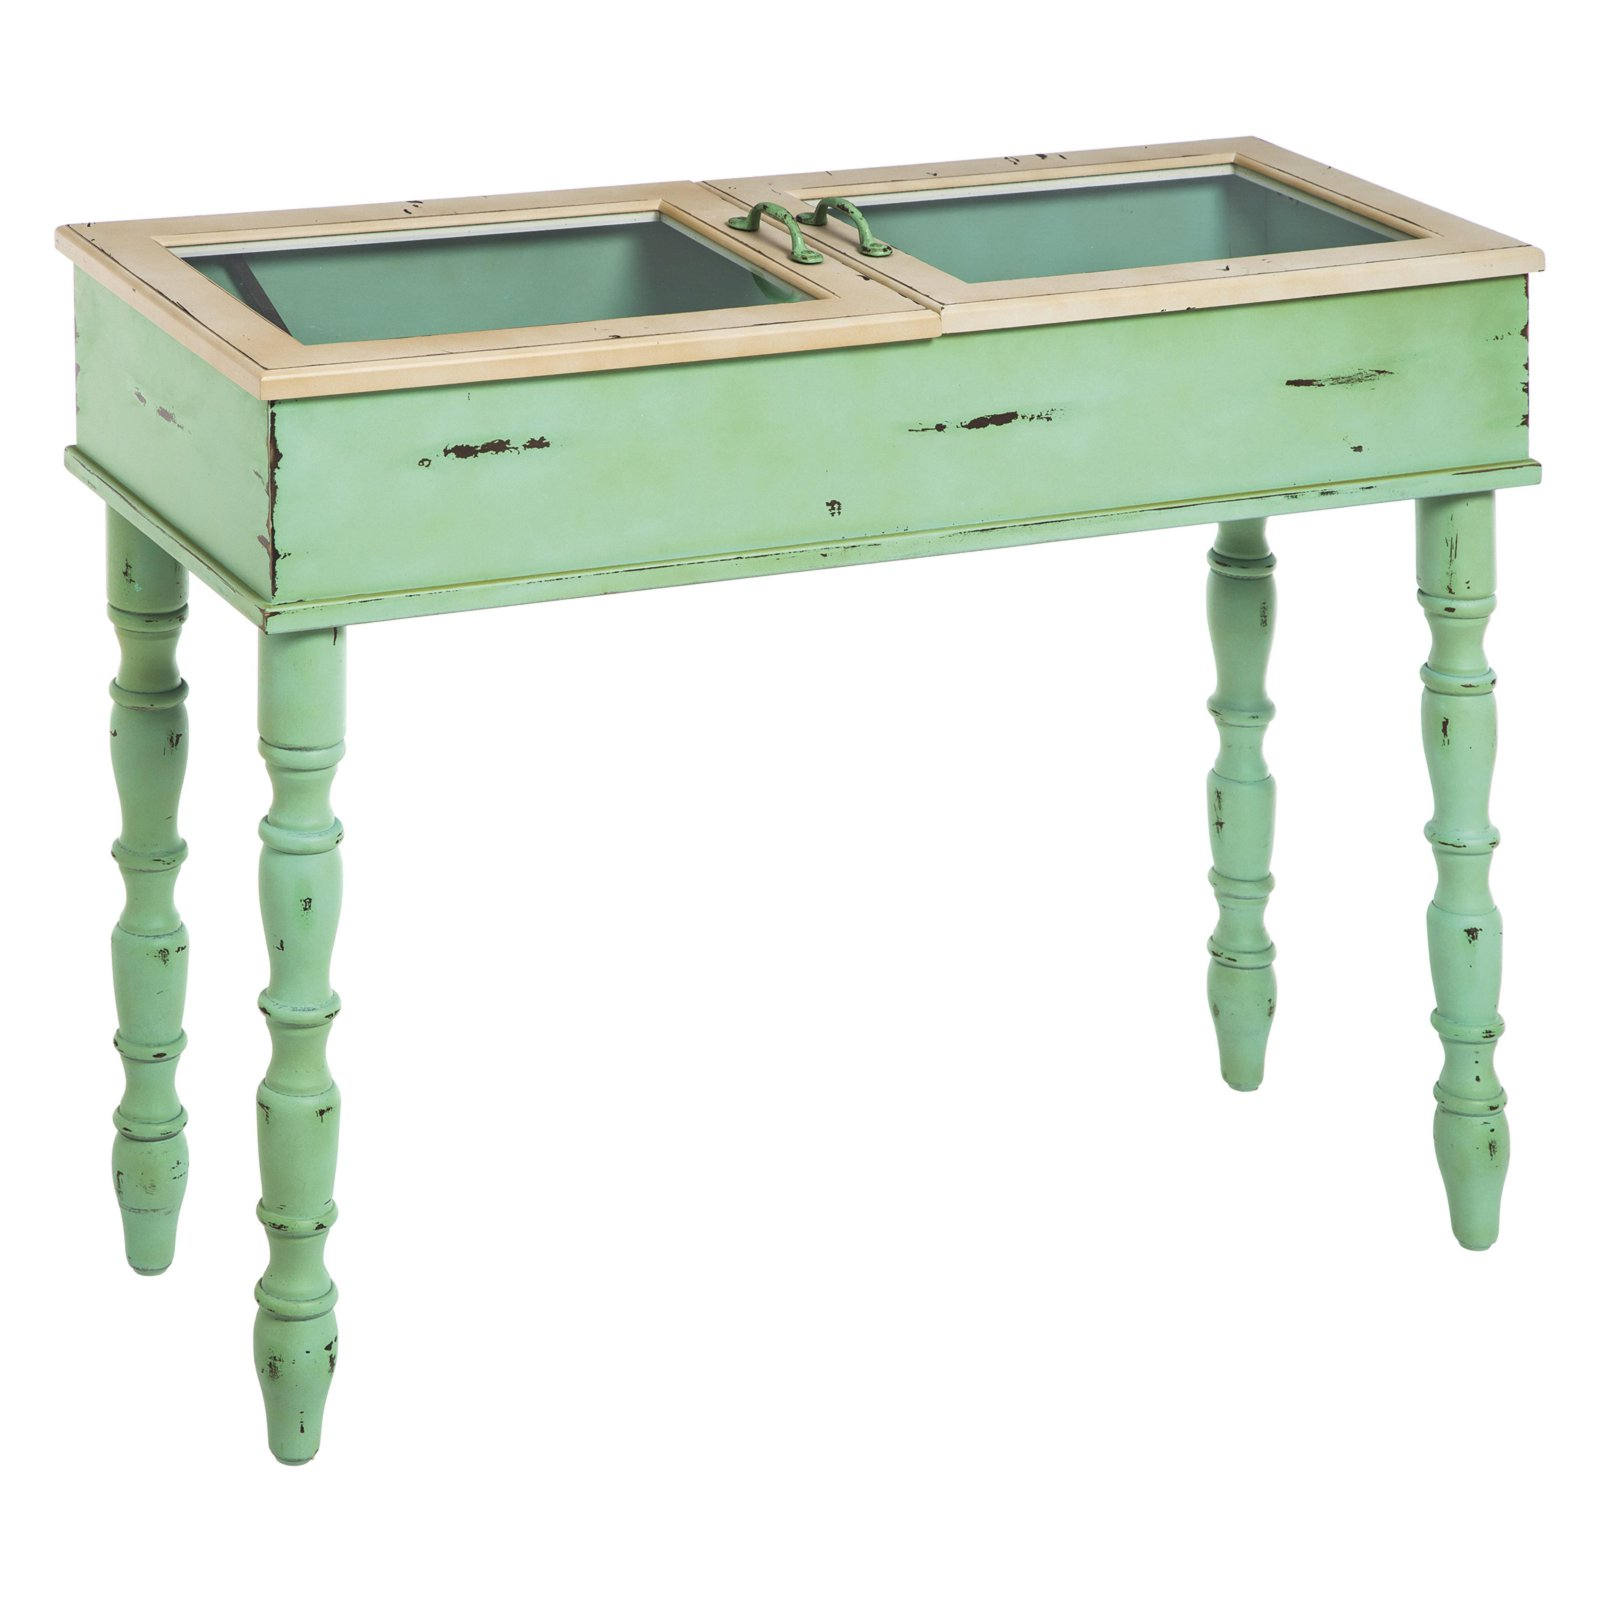 Evergreen Enterprises Sofa Table with Two Opening Glass Doors